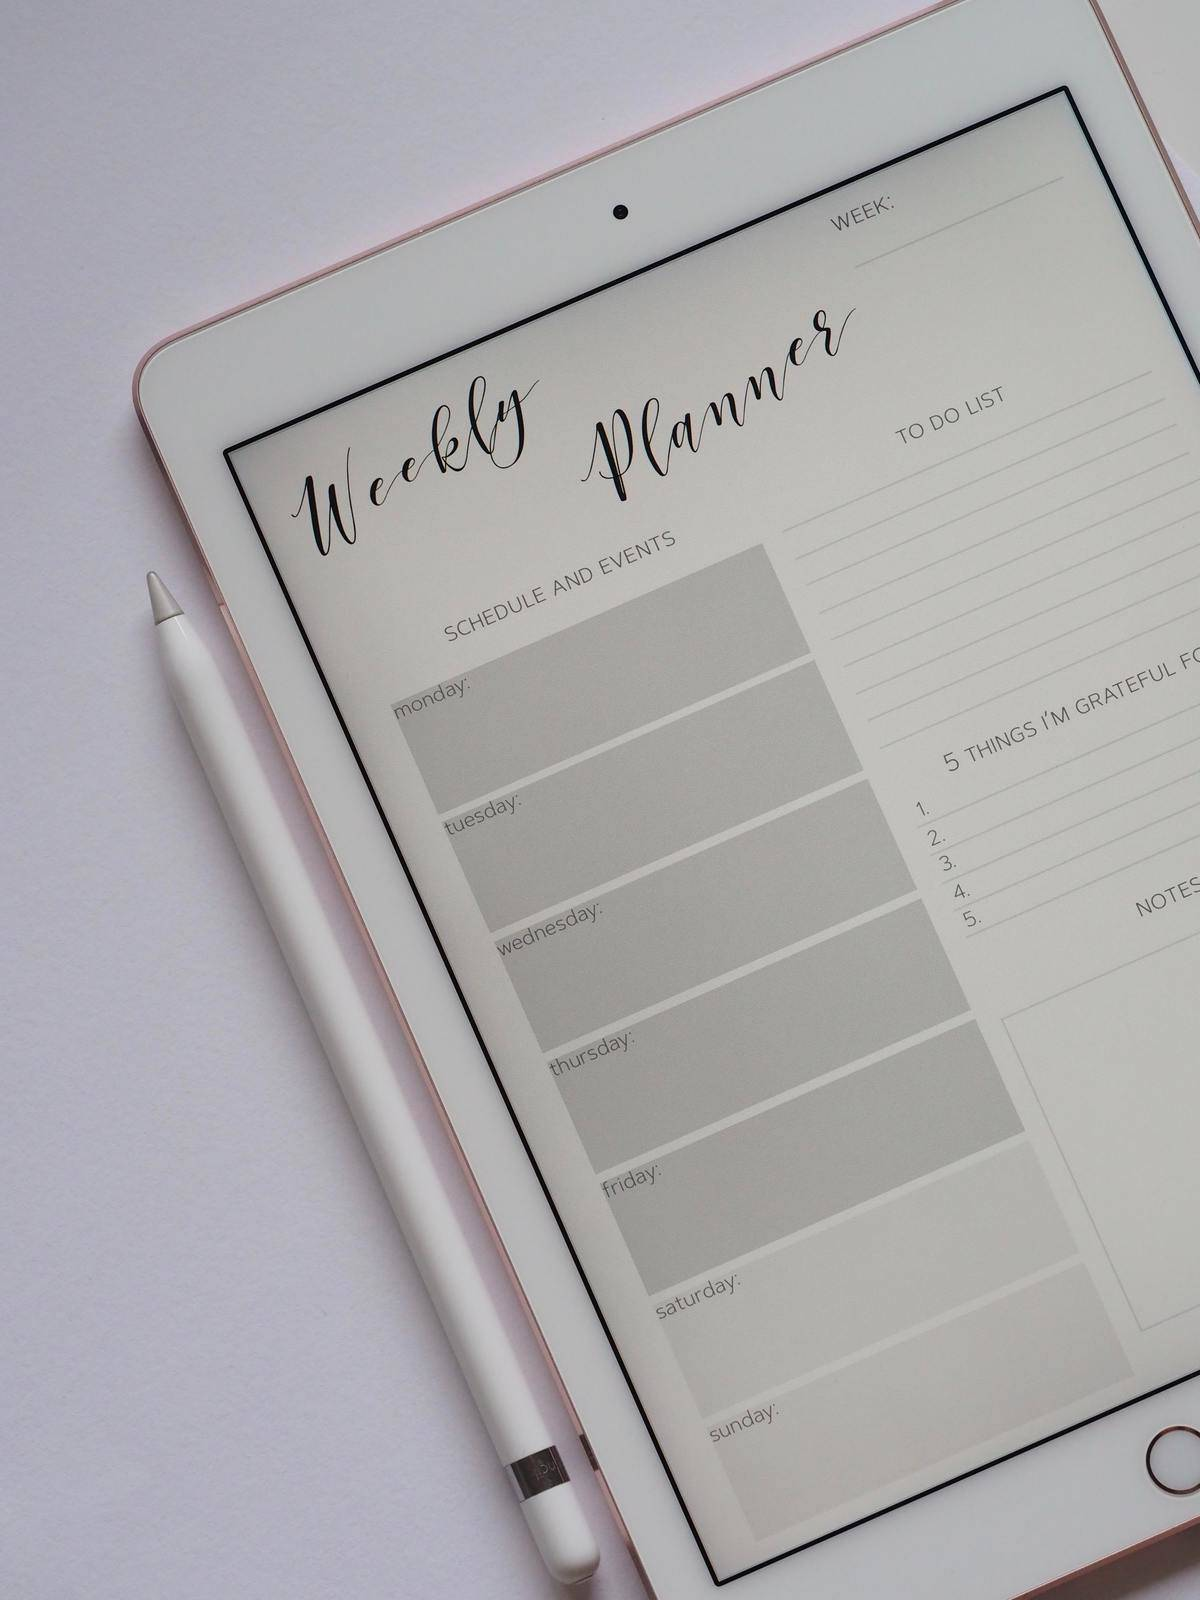 weekly planner open on ipad